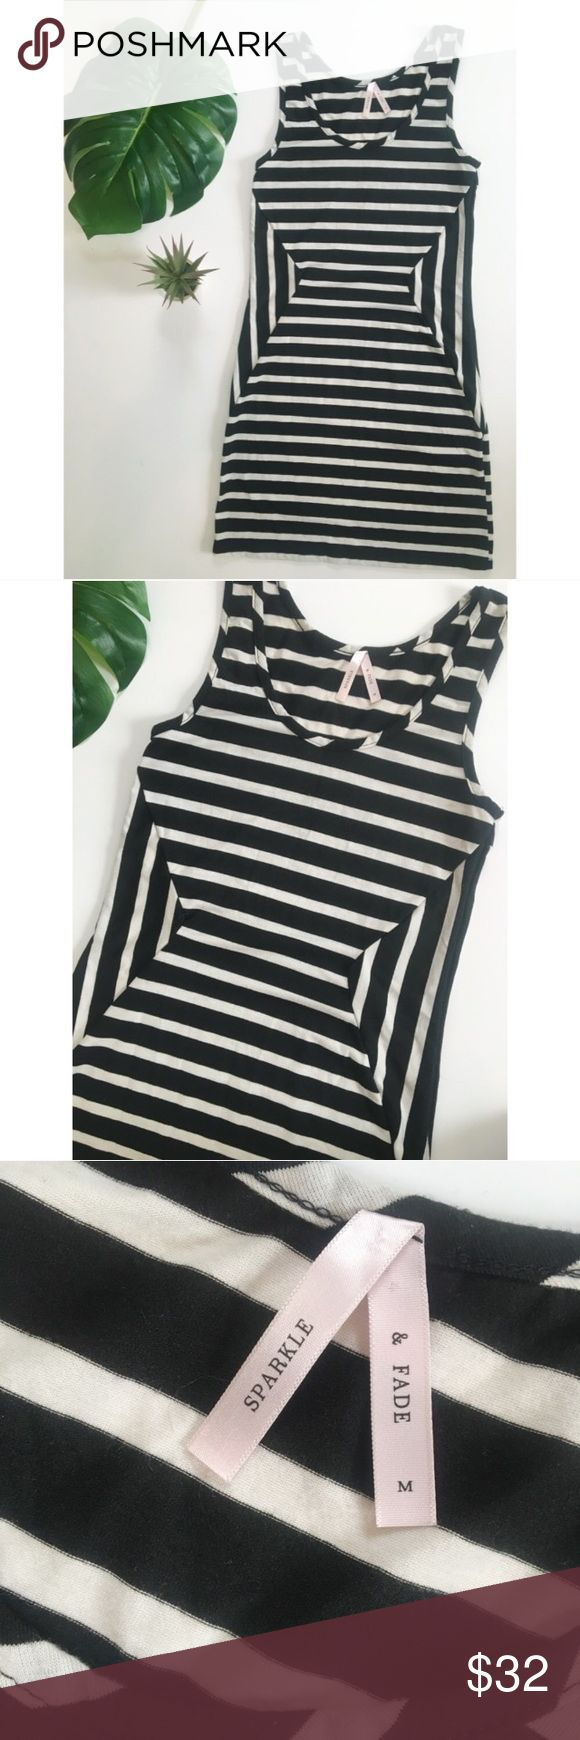 Urban Outfitters Black White Stripe Bodycon Dress Cool black and white striped geometric pattern dress by Sparkle & Fade. Comfortable cotton fabric. Bodycon fit, but not too tight. Tank top style. Super cute! Urban Outfitters Dresses